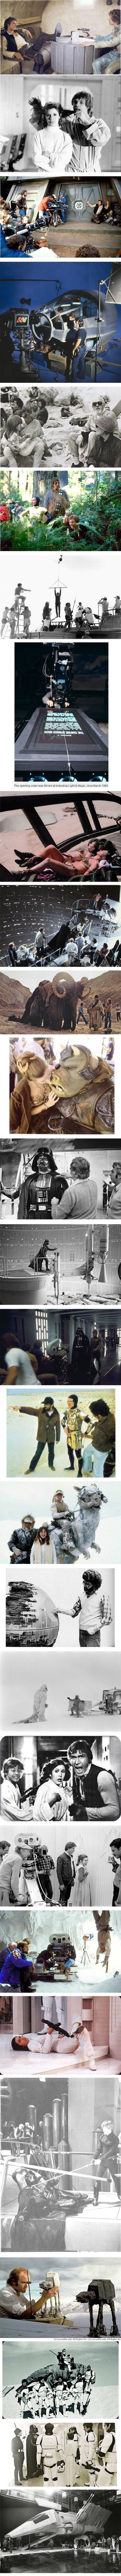 Star Wars behind the scenes! Disney